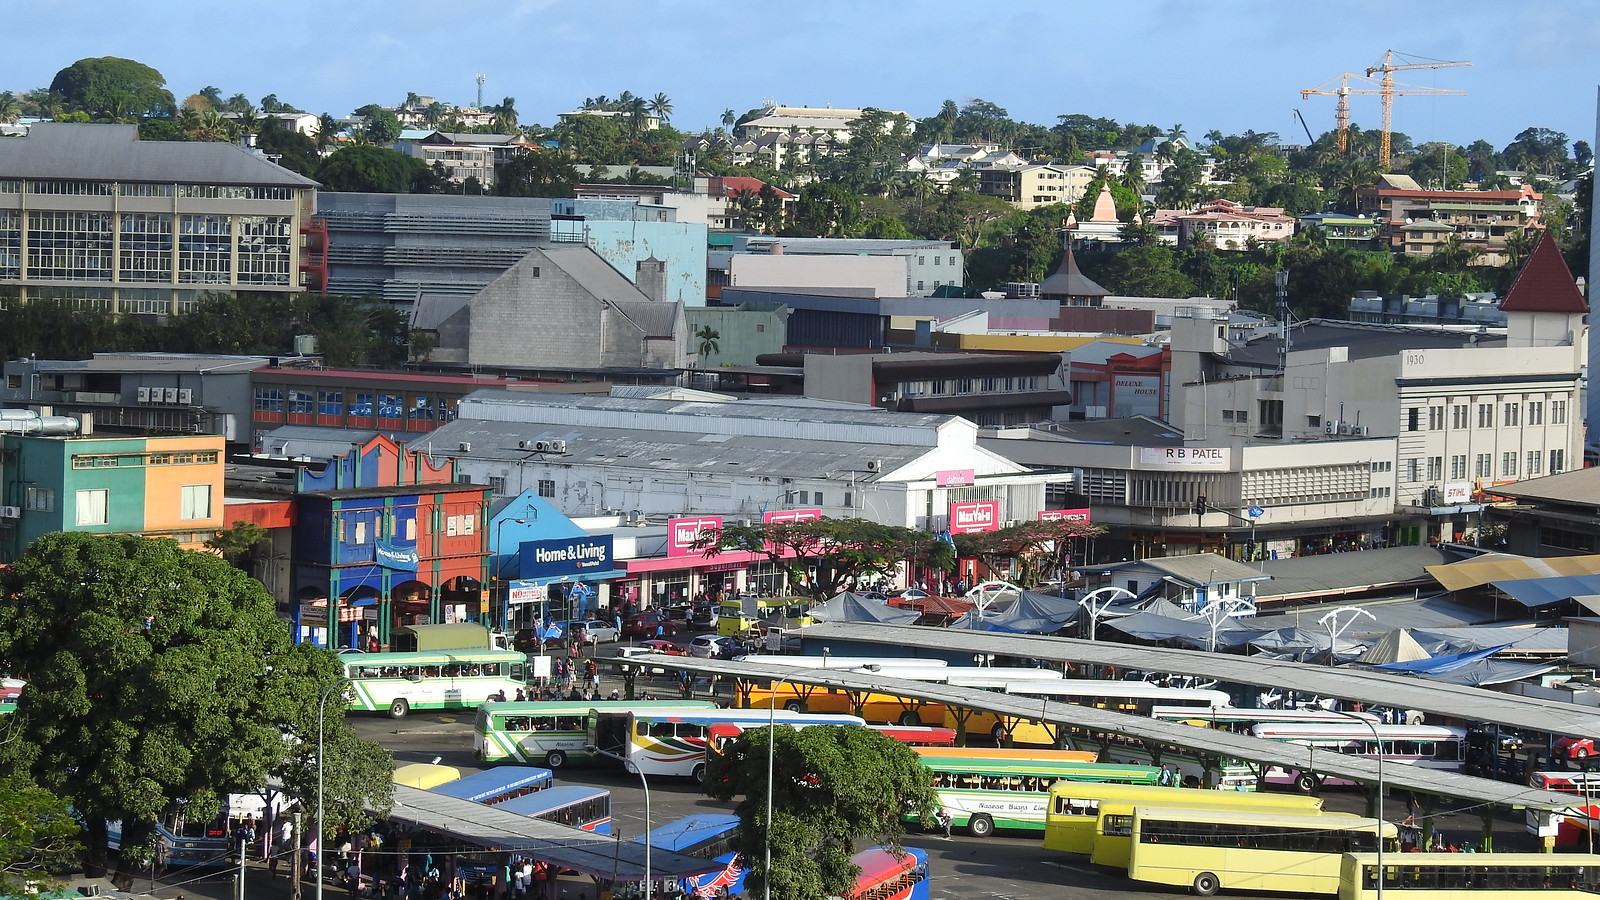 Suva fiji the economic capital of south pacific skyscrapercity flickr dennis s hurd publicscrutiny Image collections